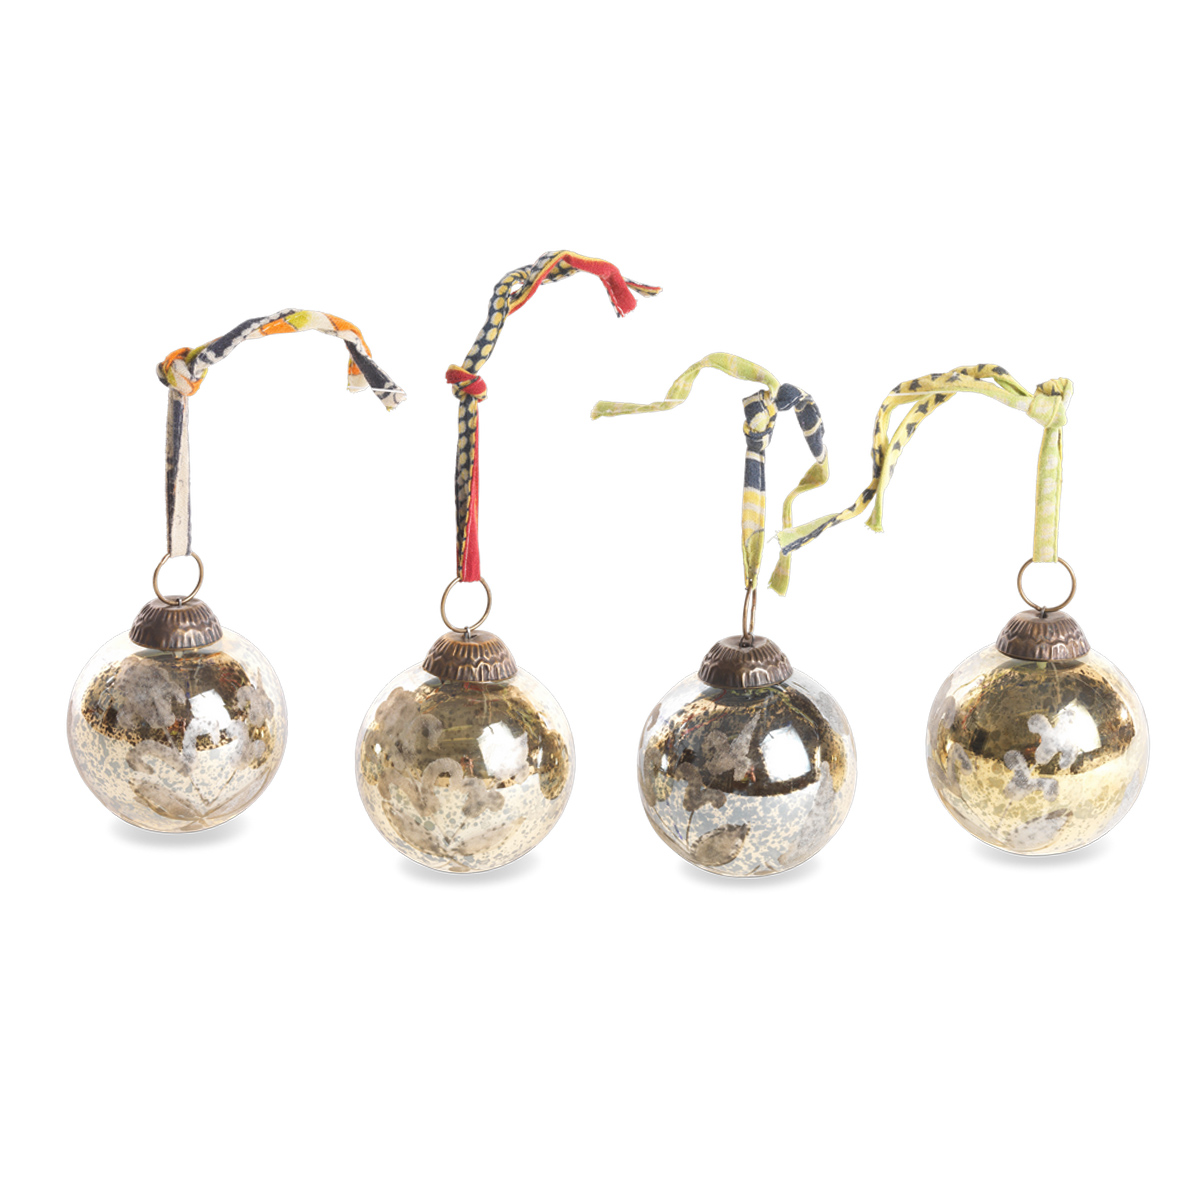 Nkuku mercury glass baubles